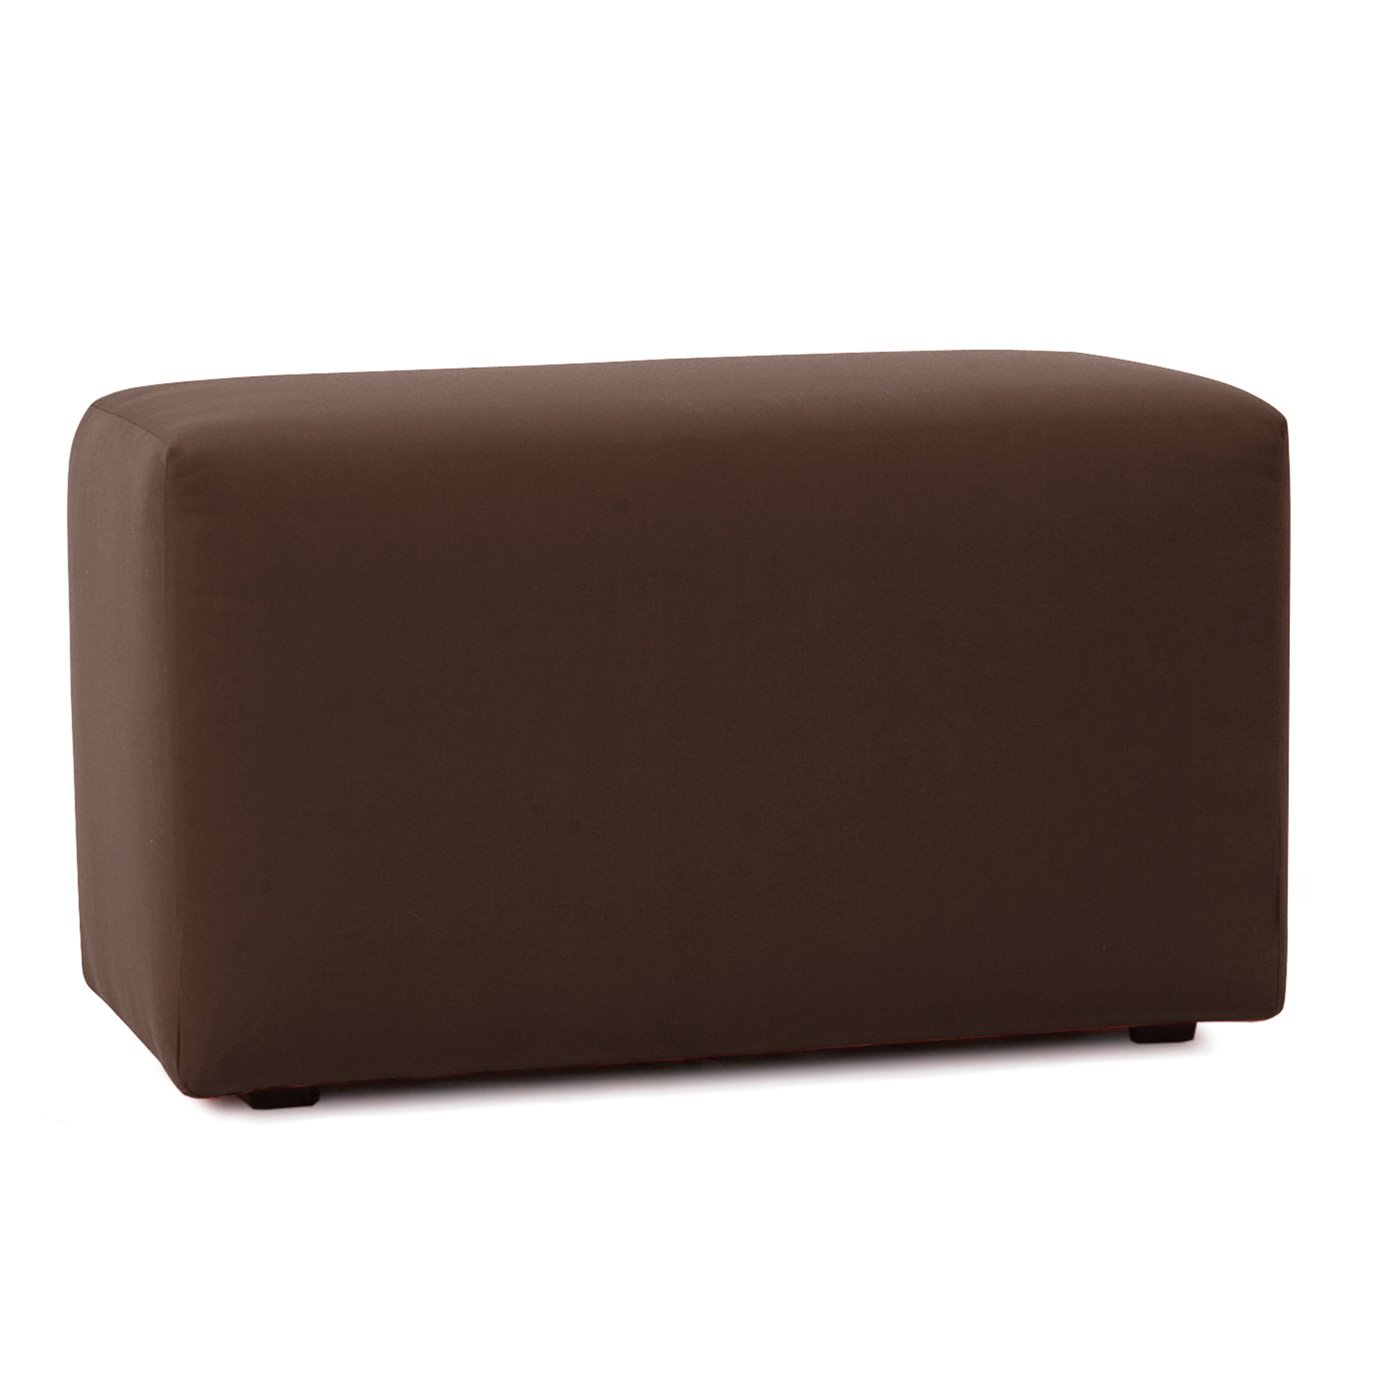 Howard Elliott Universal Bench Cover Sunbrella Outdoor Seascape Chocolate - Cover Only, Base Not Included